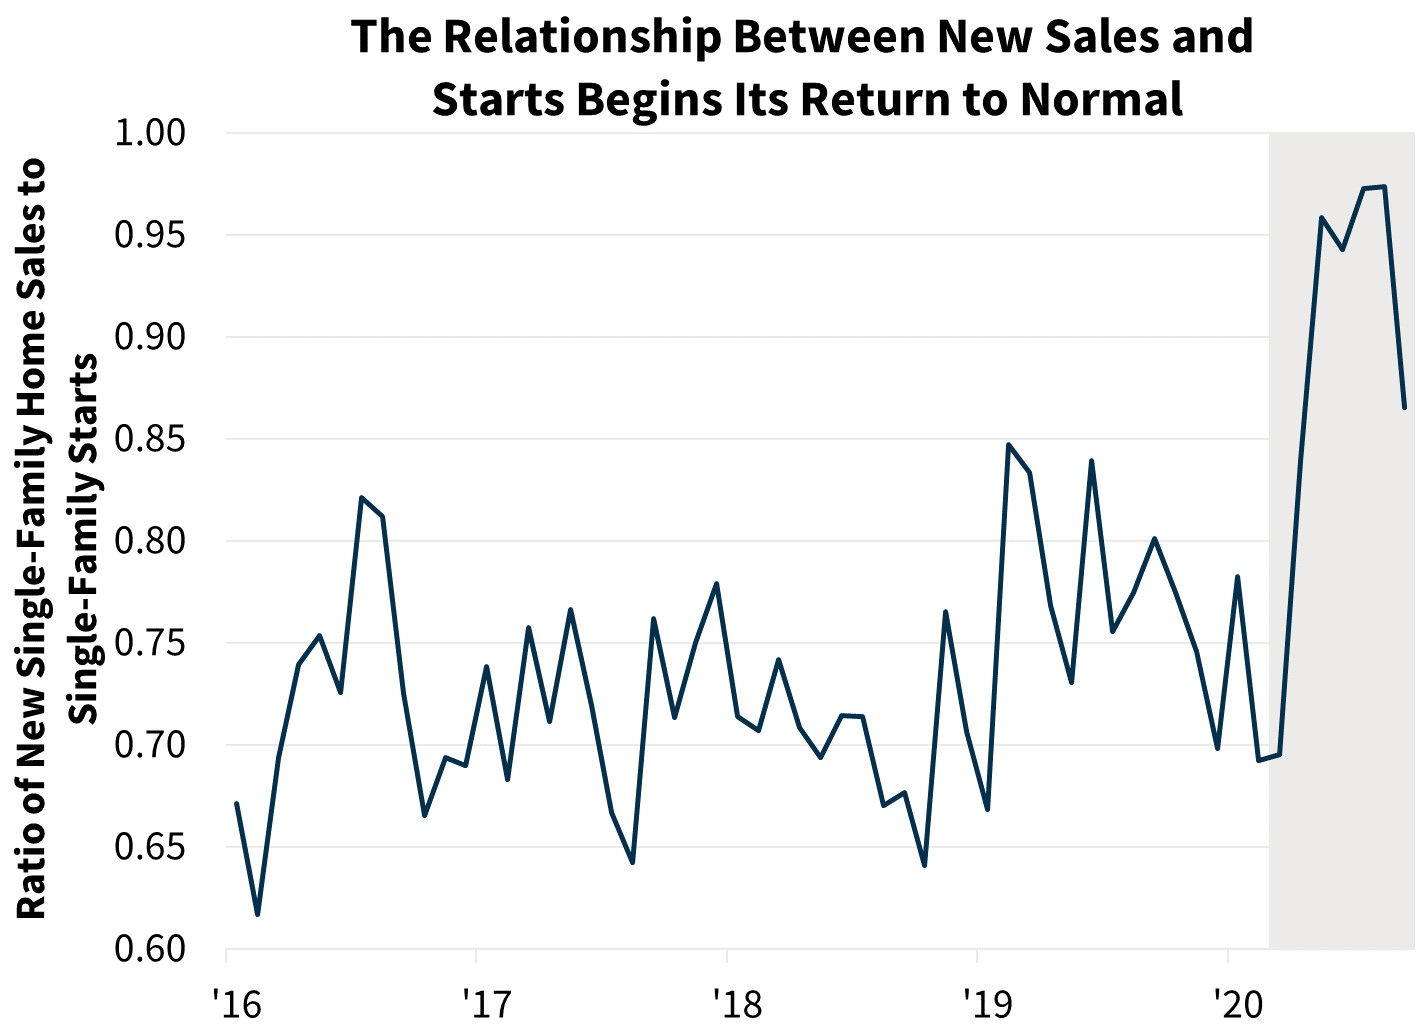 The Relationship Between New Sales and Starts Begins Its Return to Normal